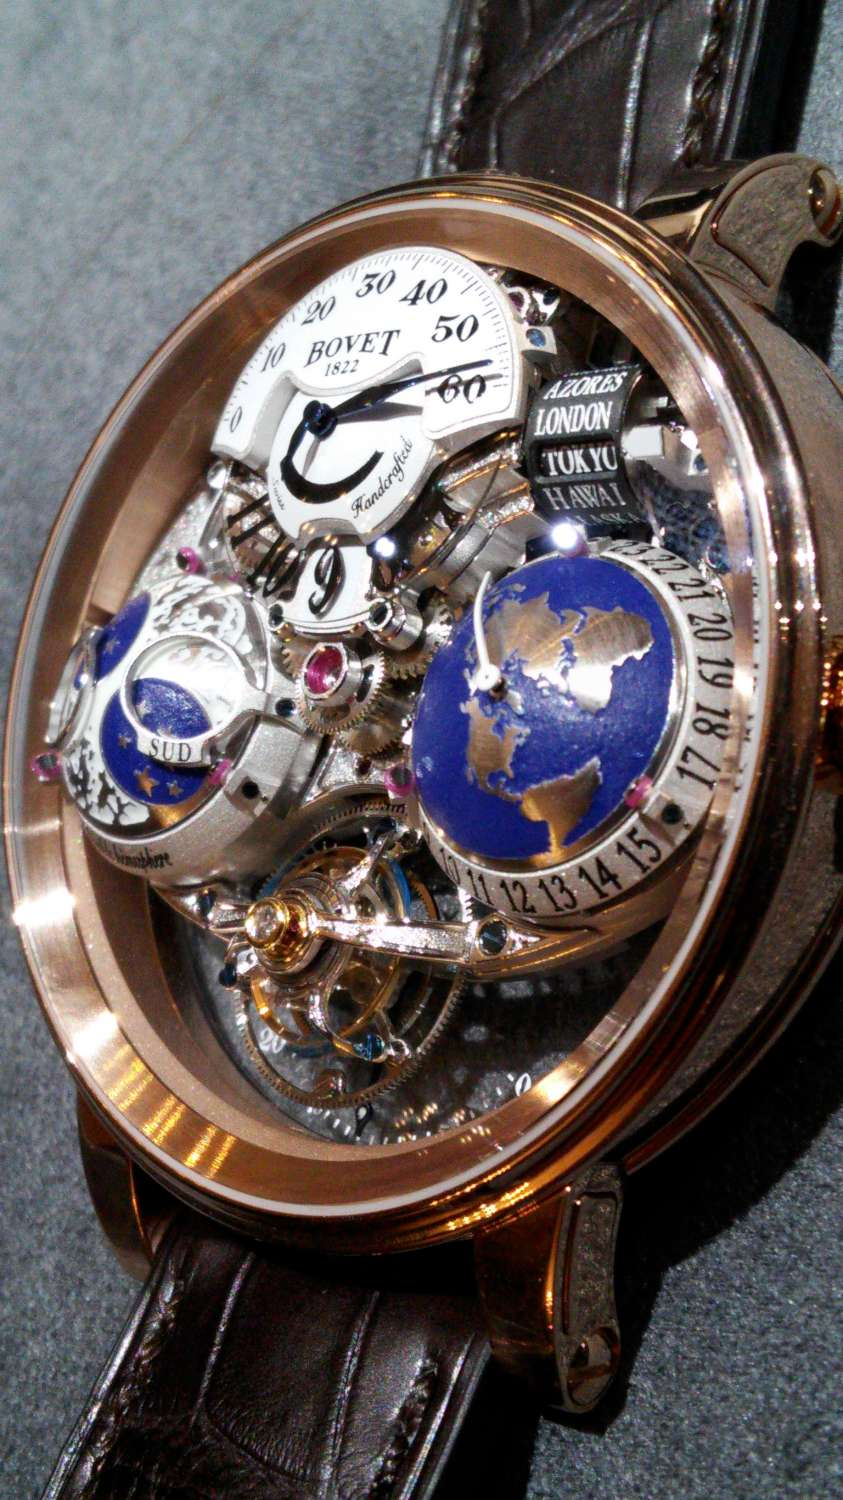 july of no fleurier s grandfeu bovet watches watch bald fi magazine happy tag watchtime eagles usa